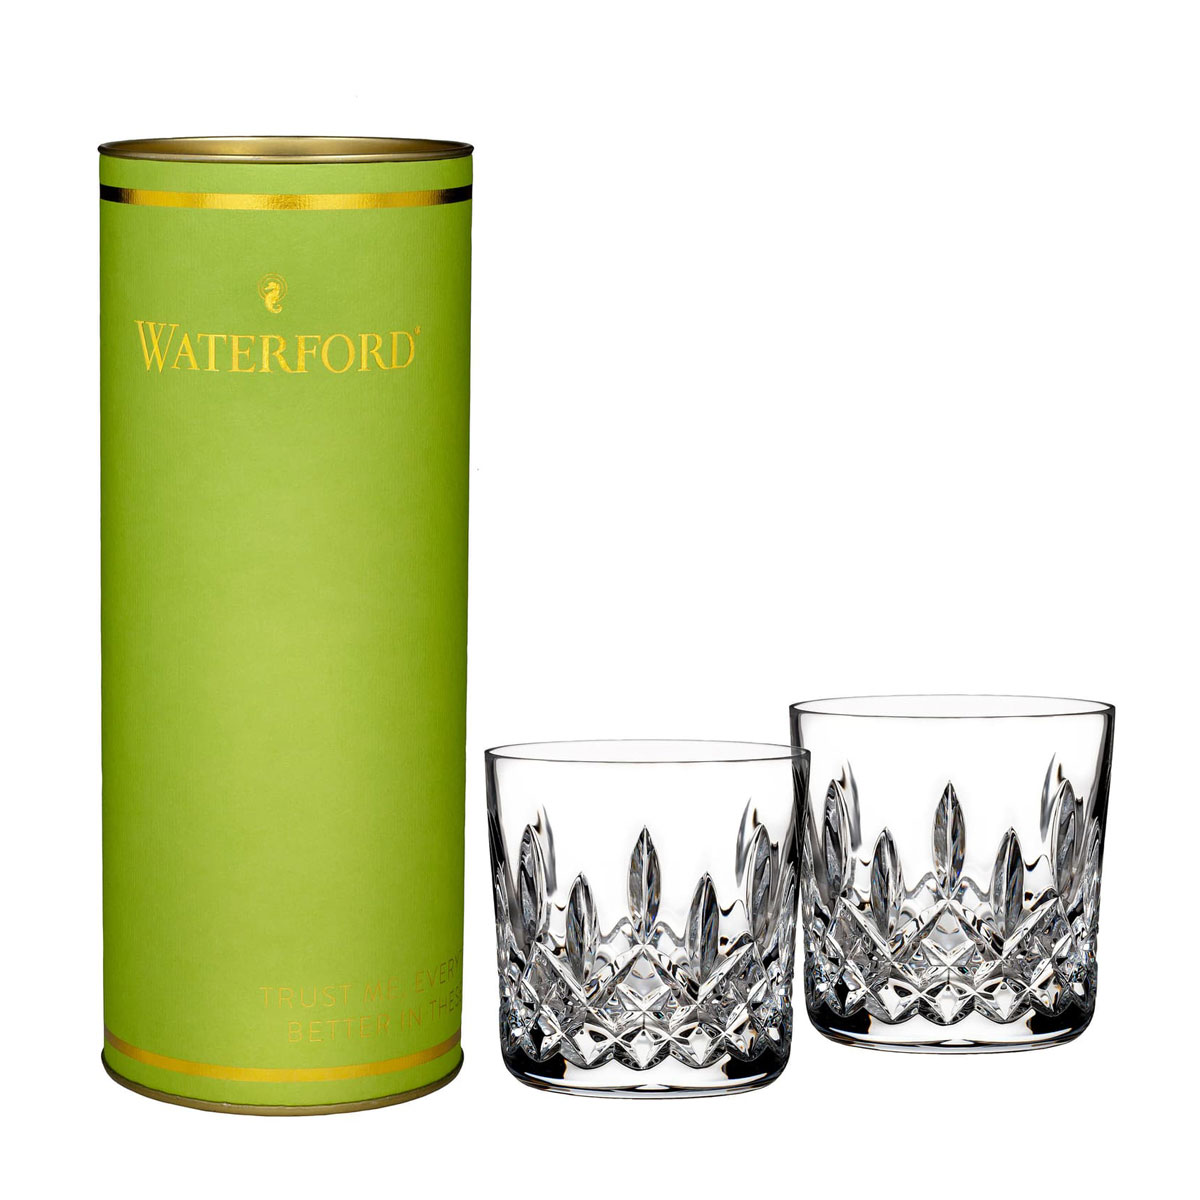 waterford old fashioned glass